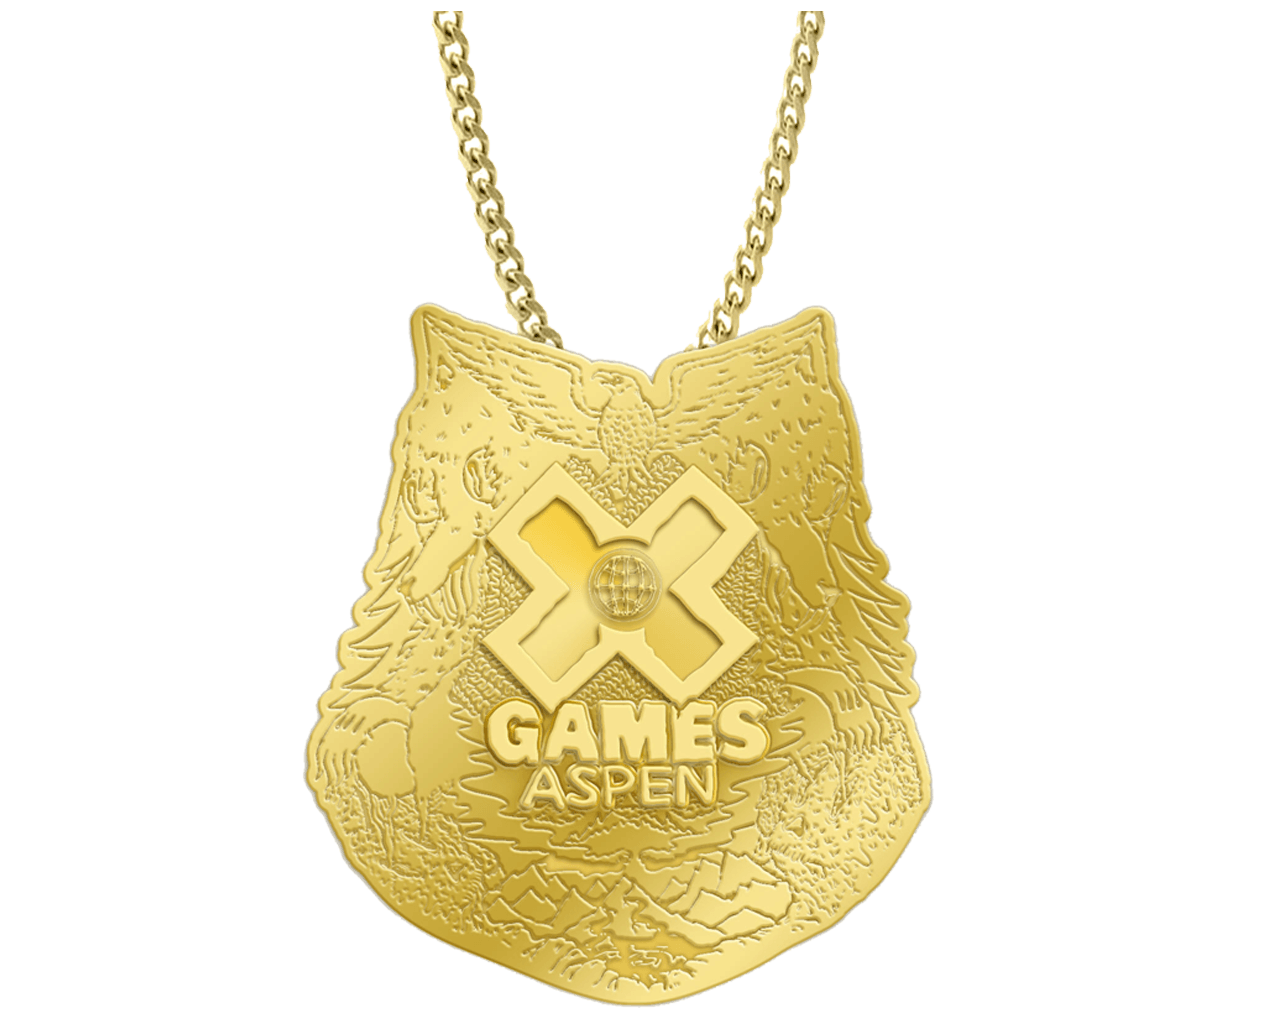 X Games Aspen 2019 messages sticker-3